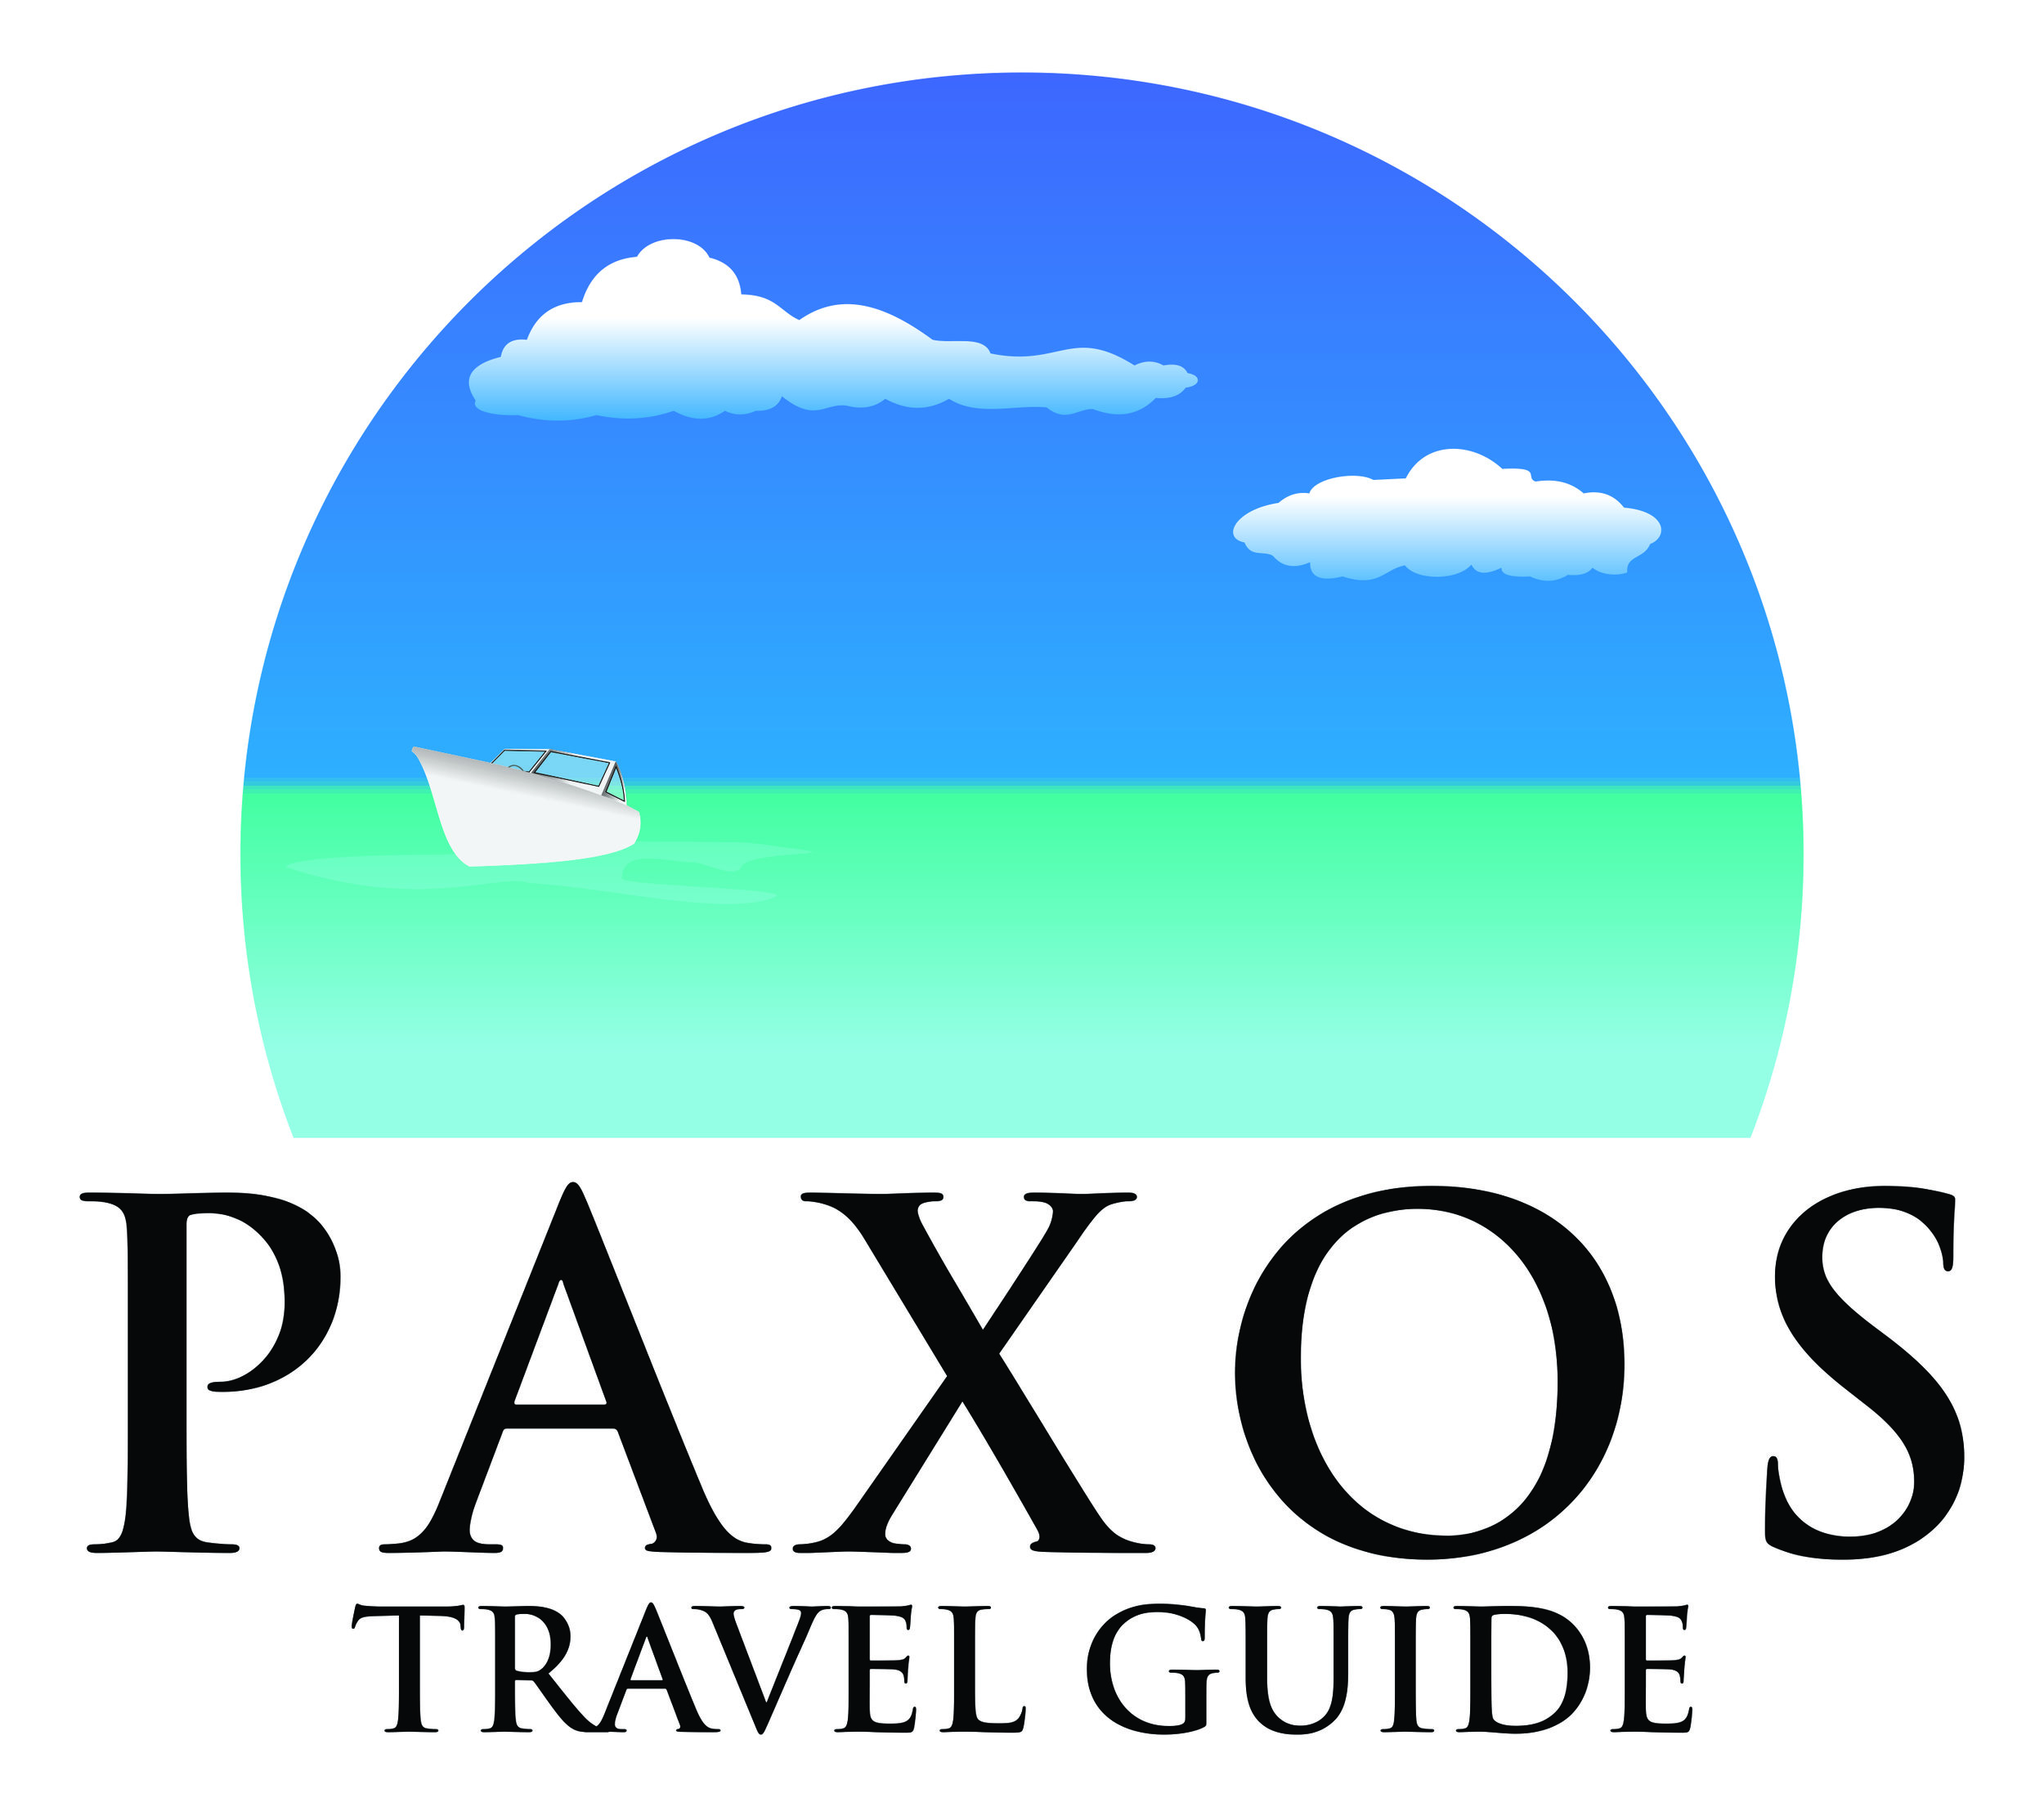 Paxos Travel Guide